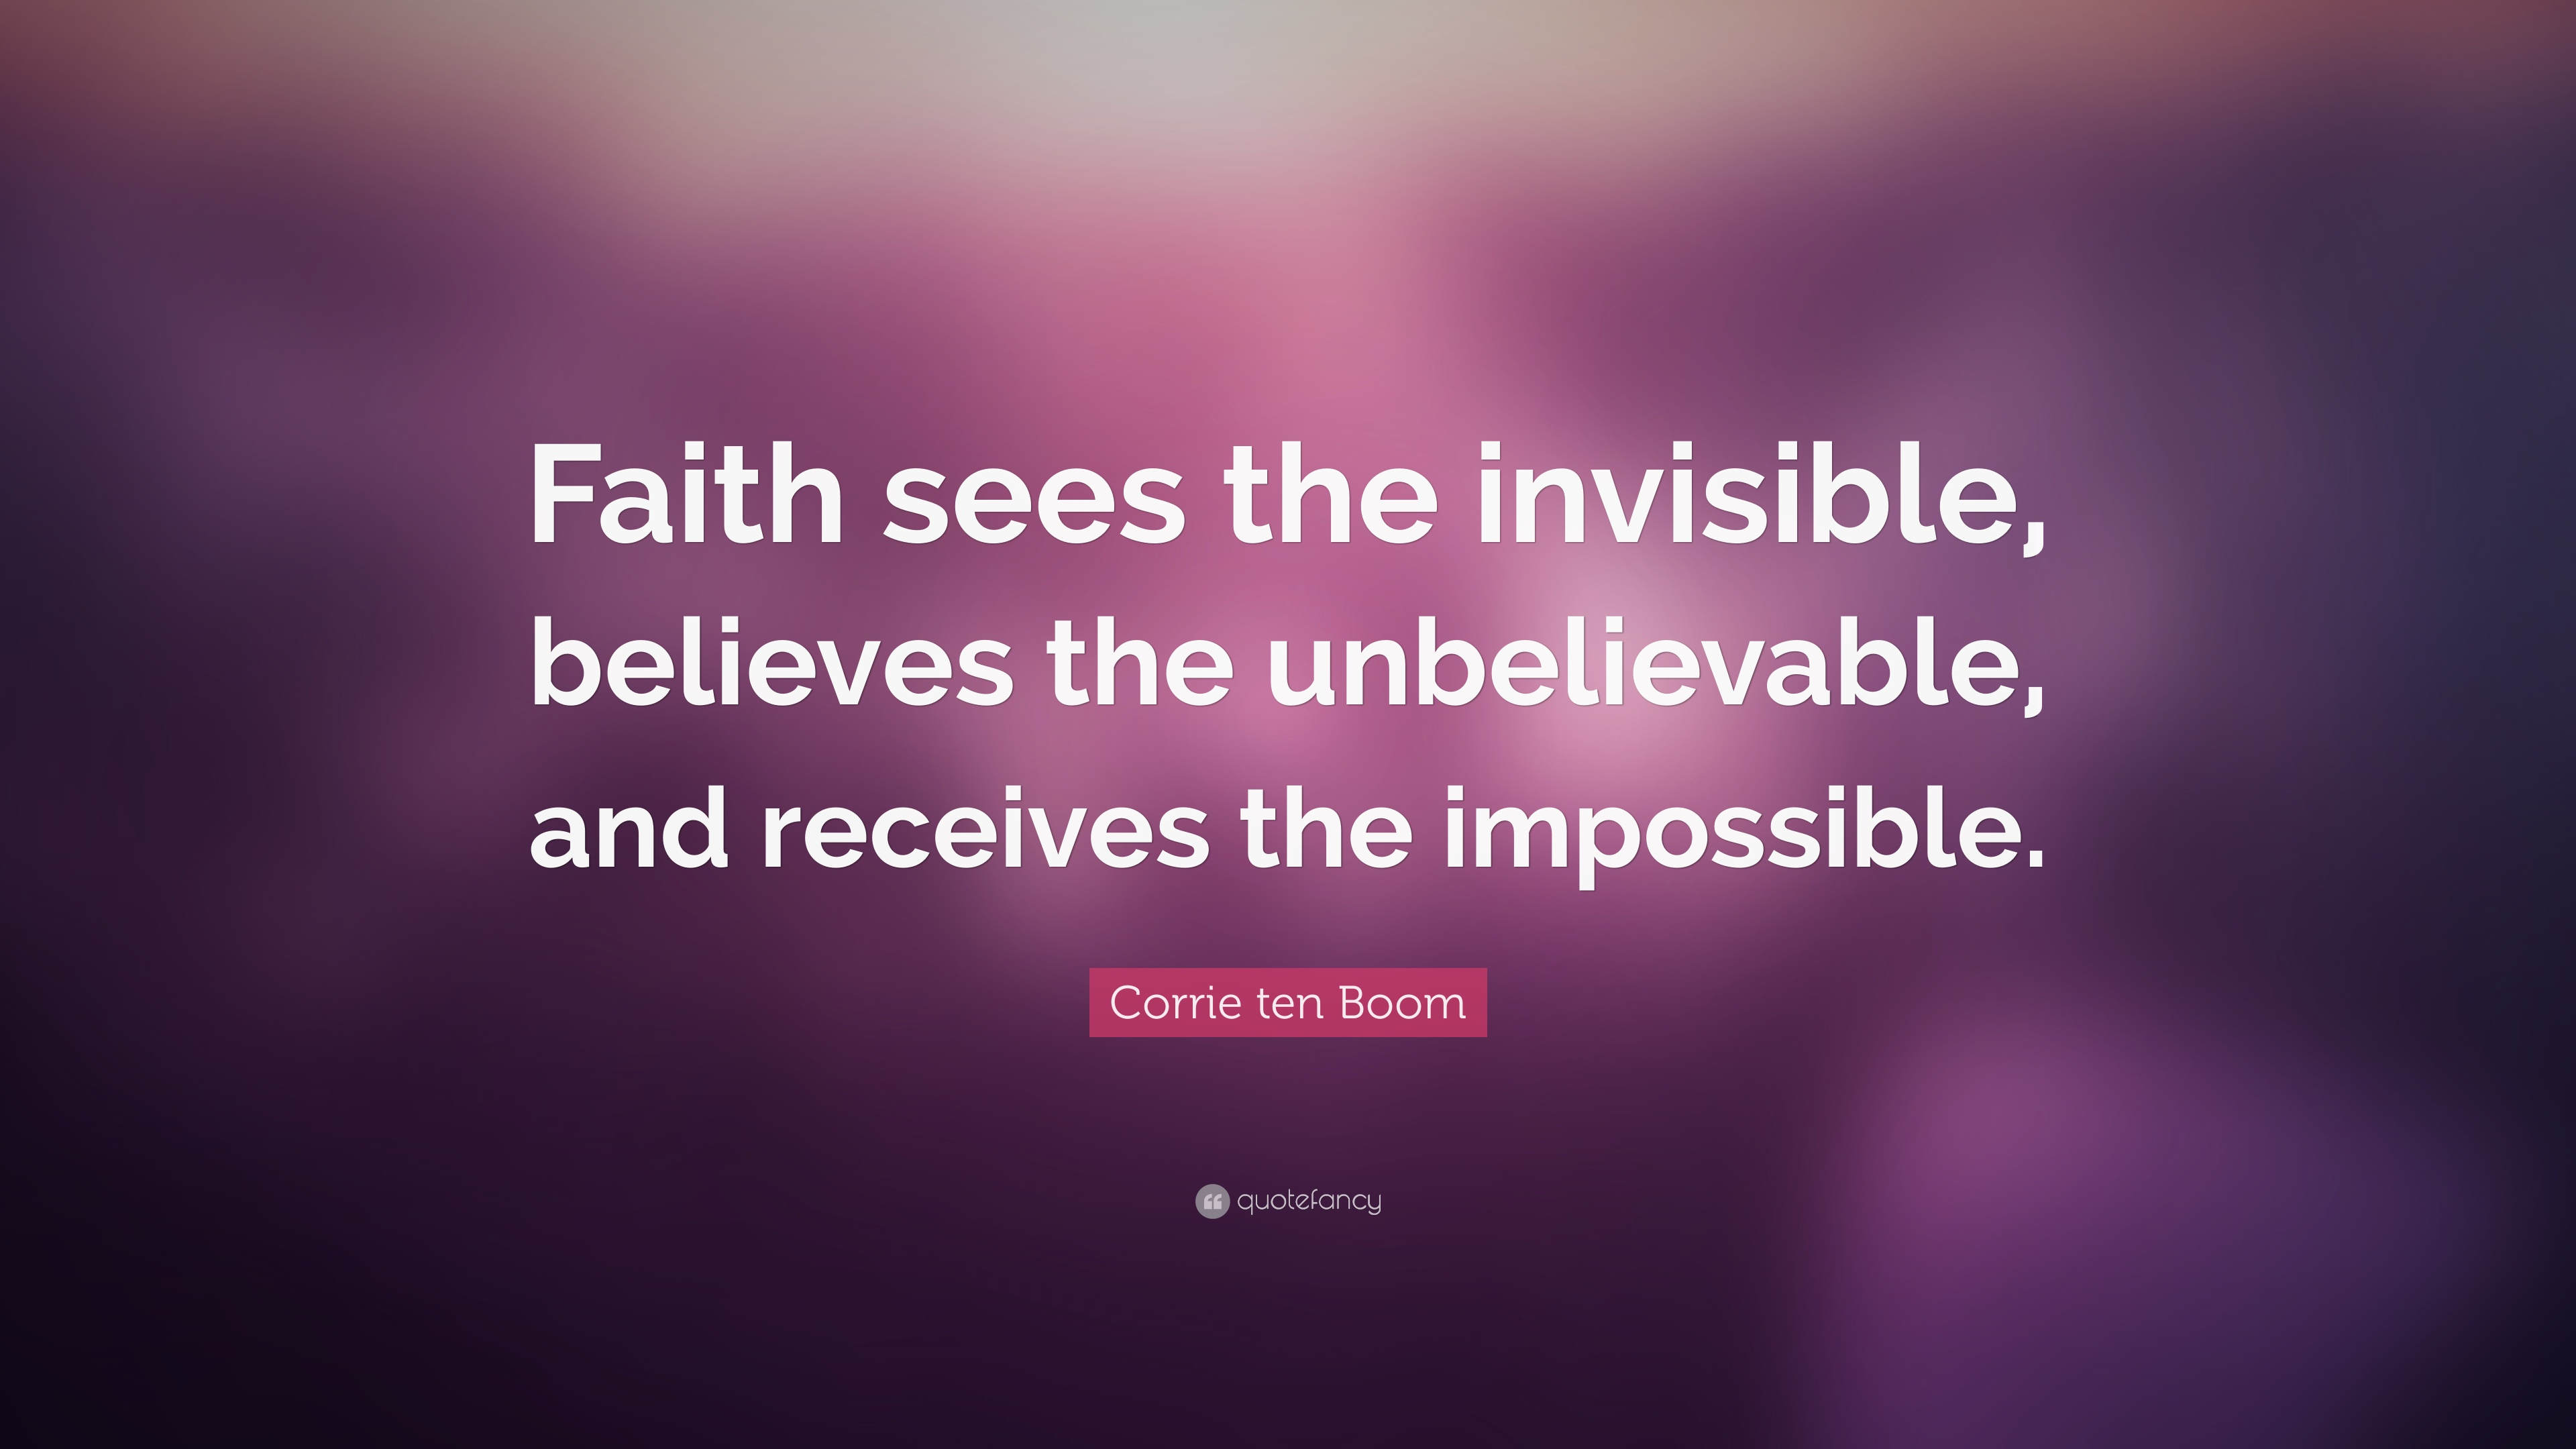 Quotes On Faith Faith Quotes 40 Wallpapers  Quotefancy